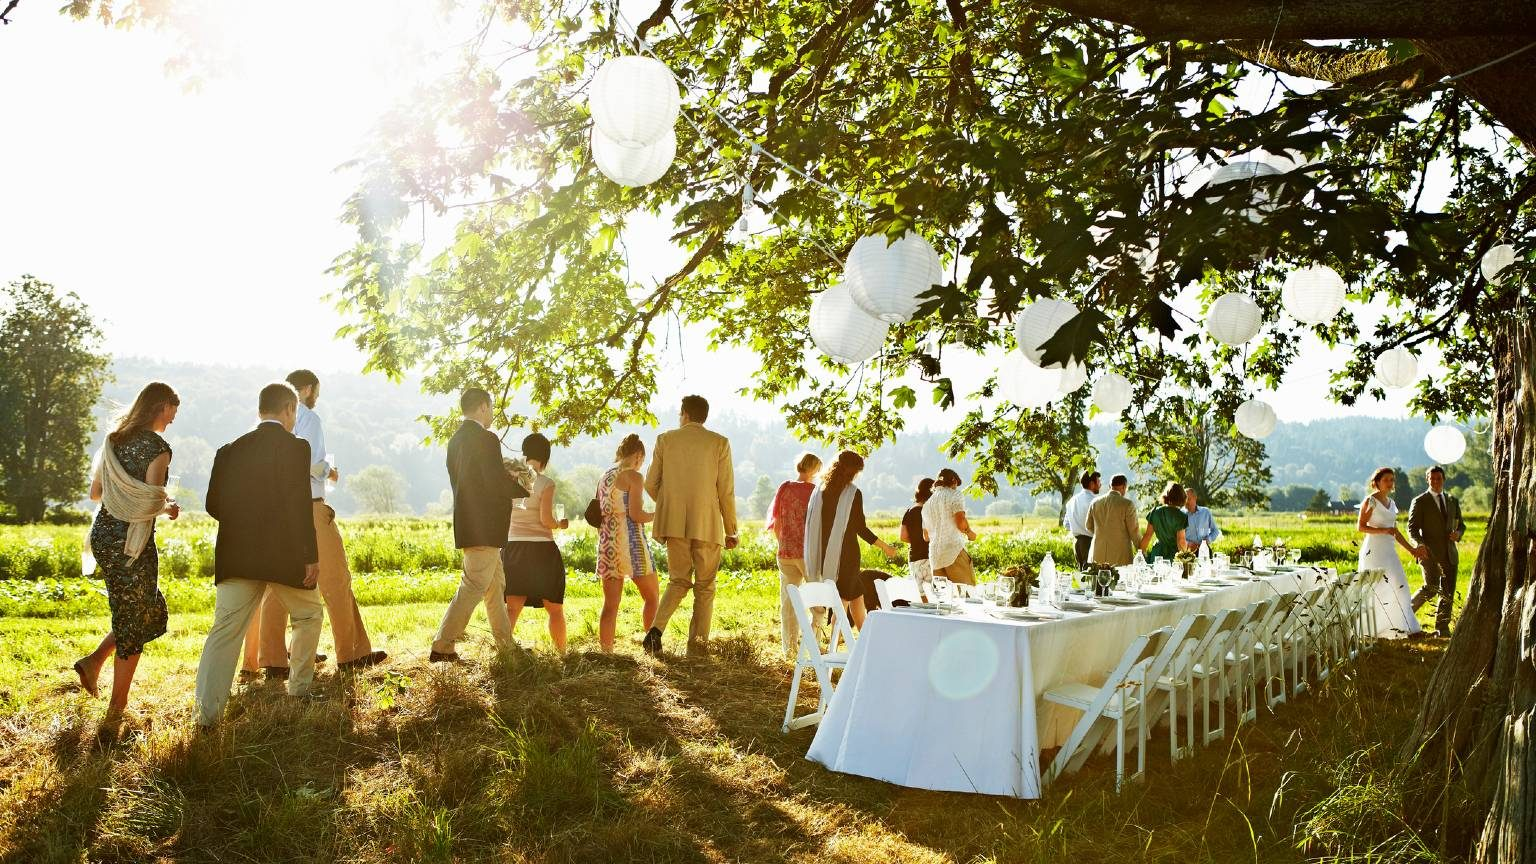 Bride and groom and wedding party walking to banquet table set for dinner outside under tree in field